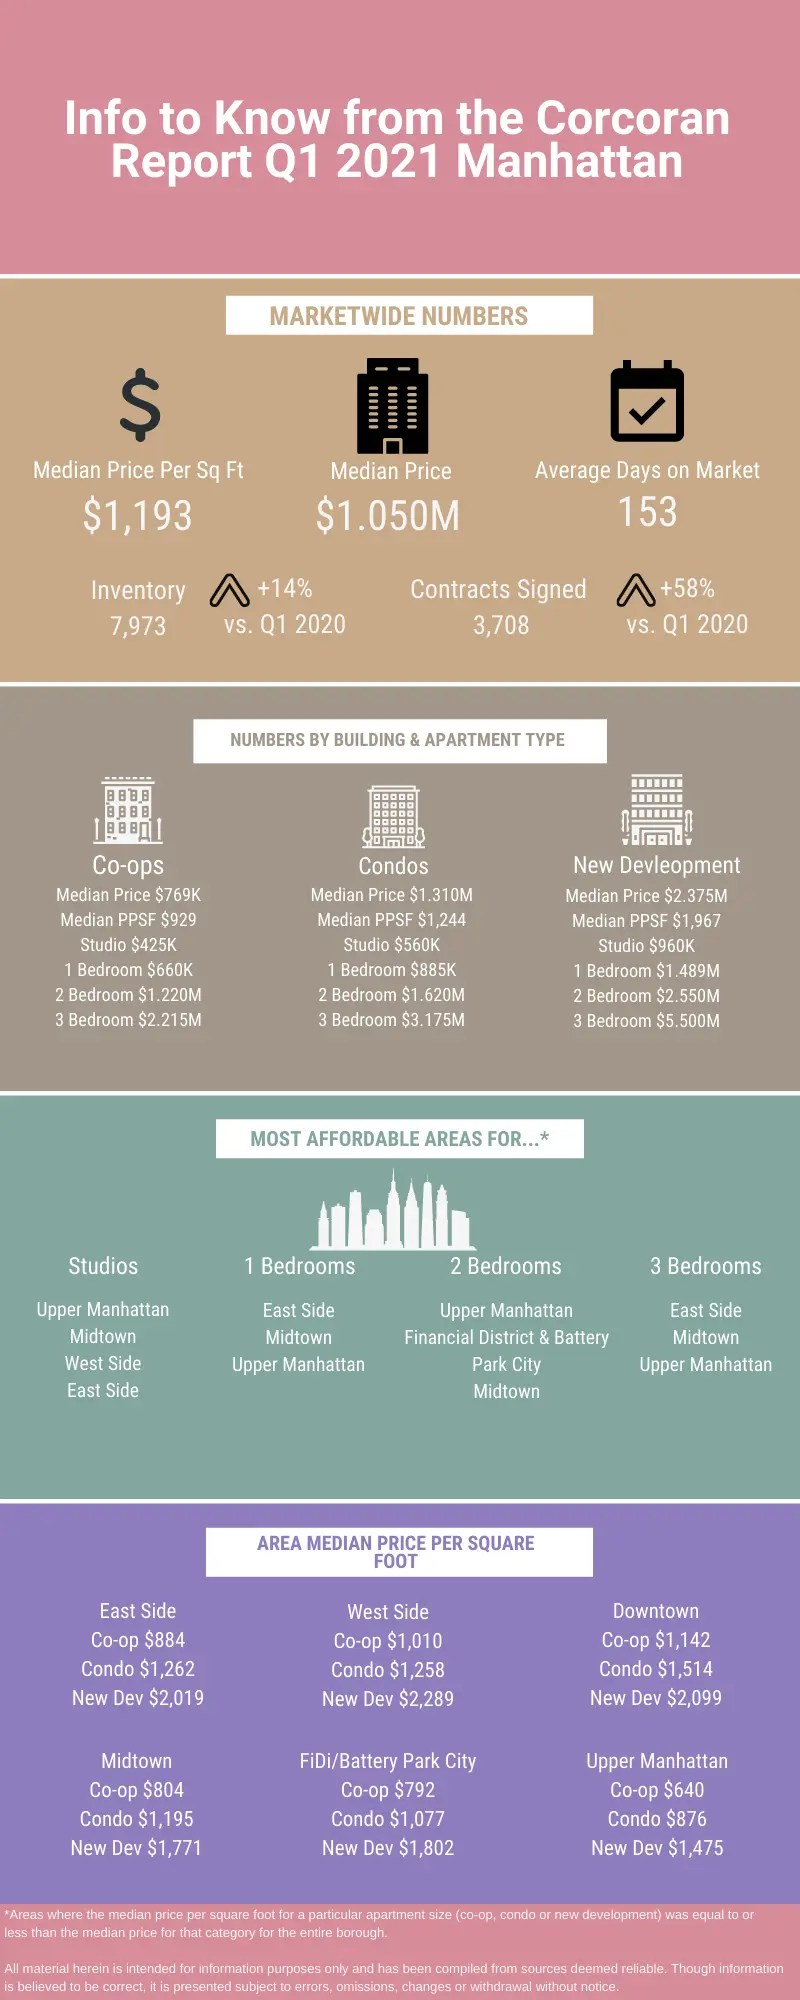 Infographic showing information from the Q1 2021 real estate market update from Corcoran for Manhattan